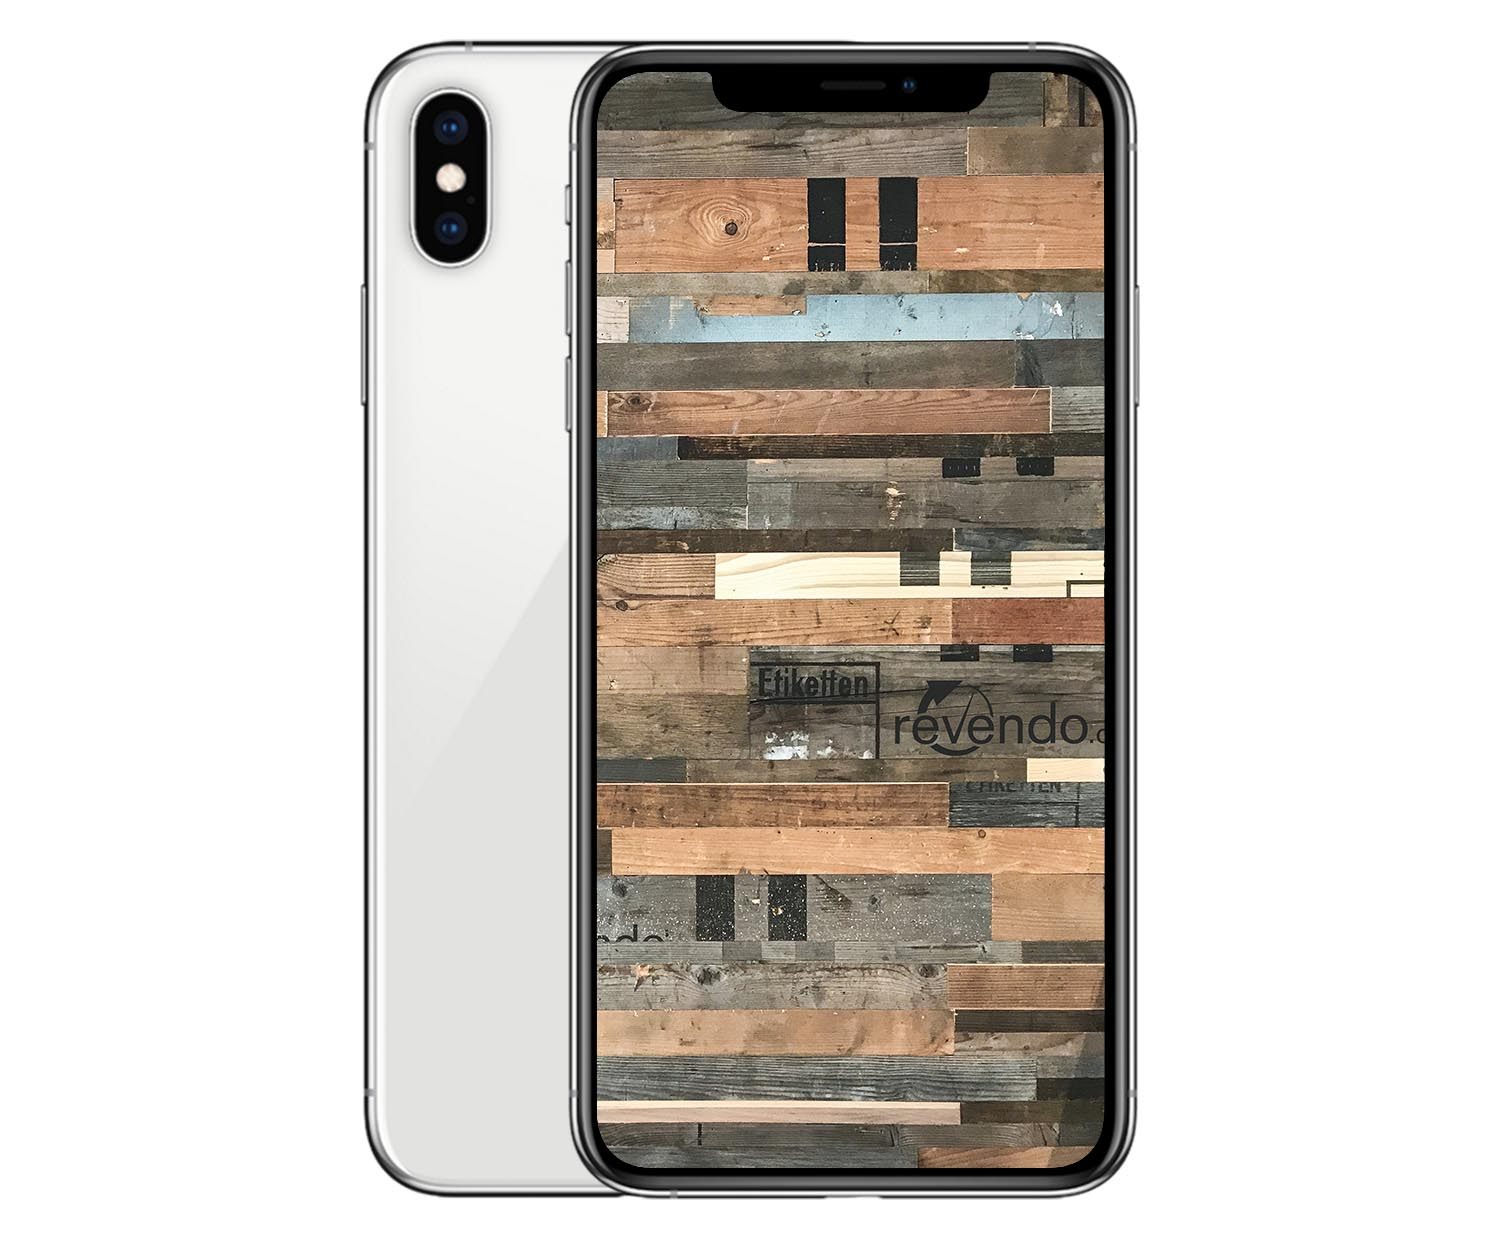 apple iphone xs max dual sim 256 gb silber. Black Bedroom Furniture Sets. Home Design Ideas